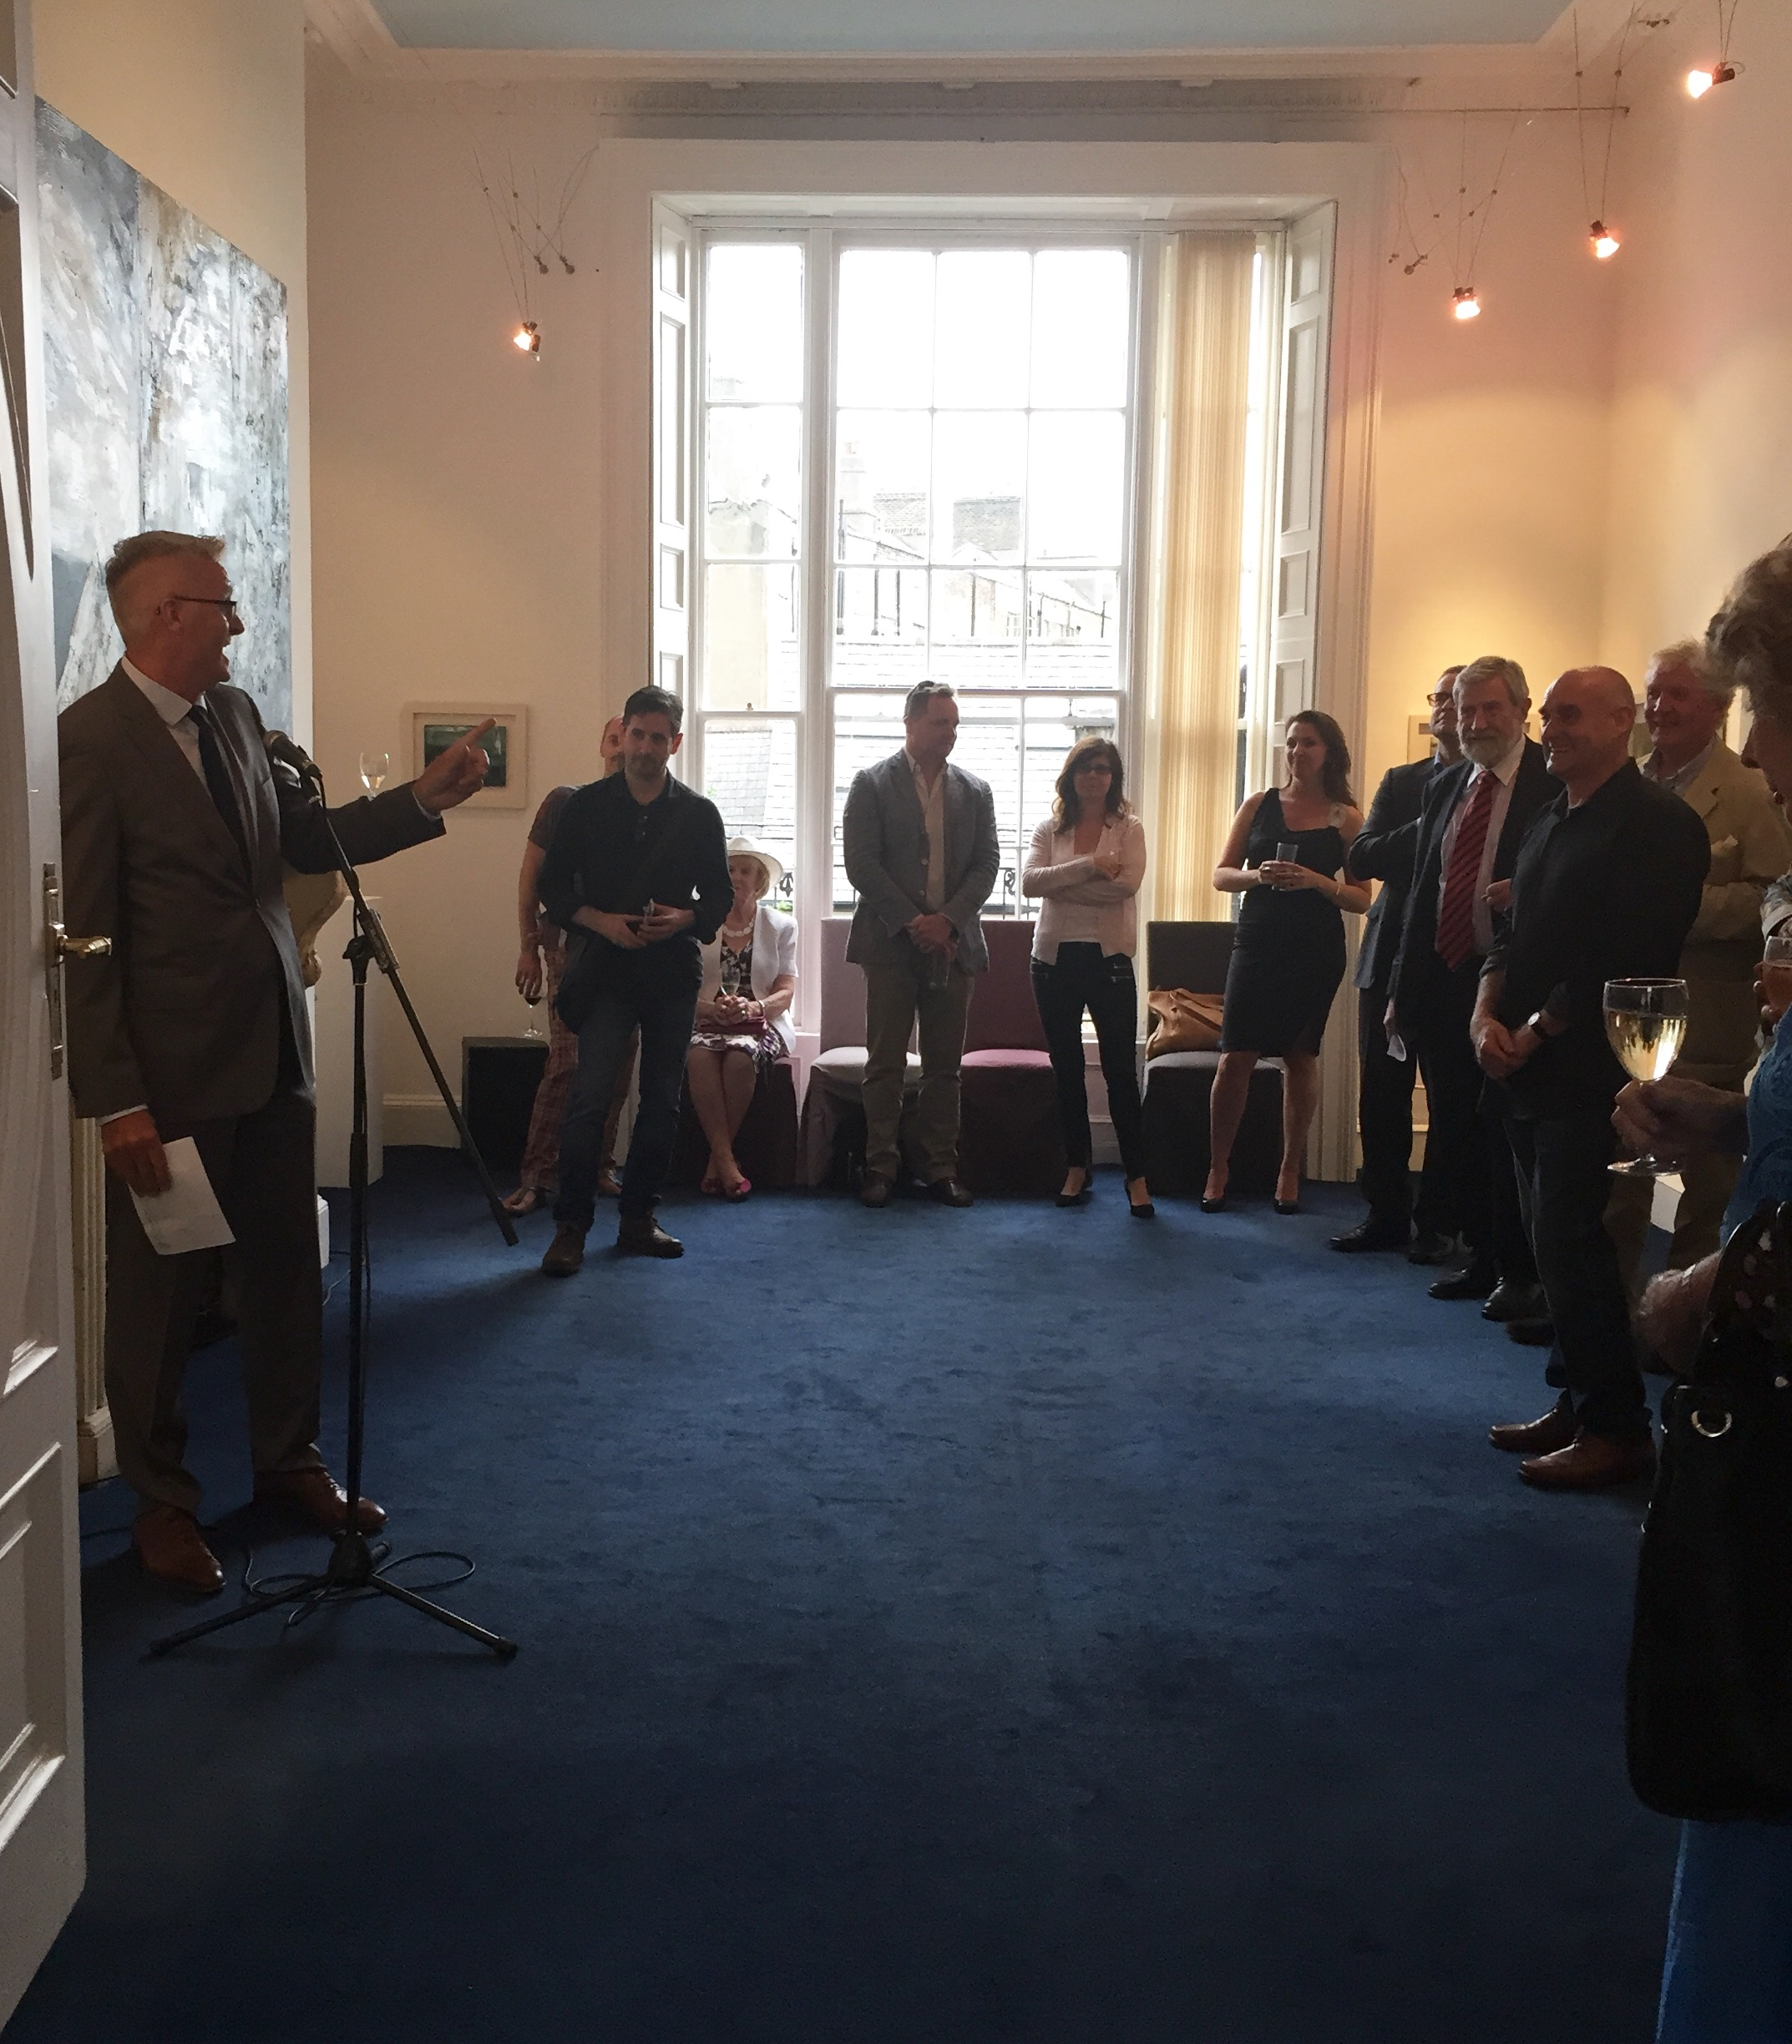 Niall O Donnchu, Assistant Secretary, Department of Arts, Heritage and the Gaeltacht officially opening the exhibition at Origin Gallery, Fitzwilliam Street, Dublin.